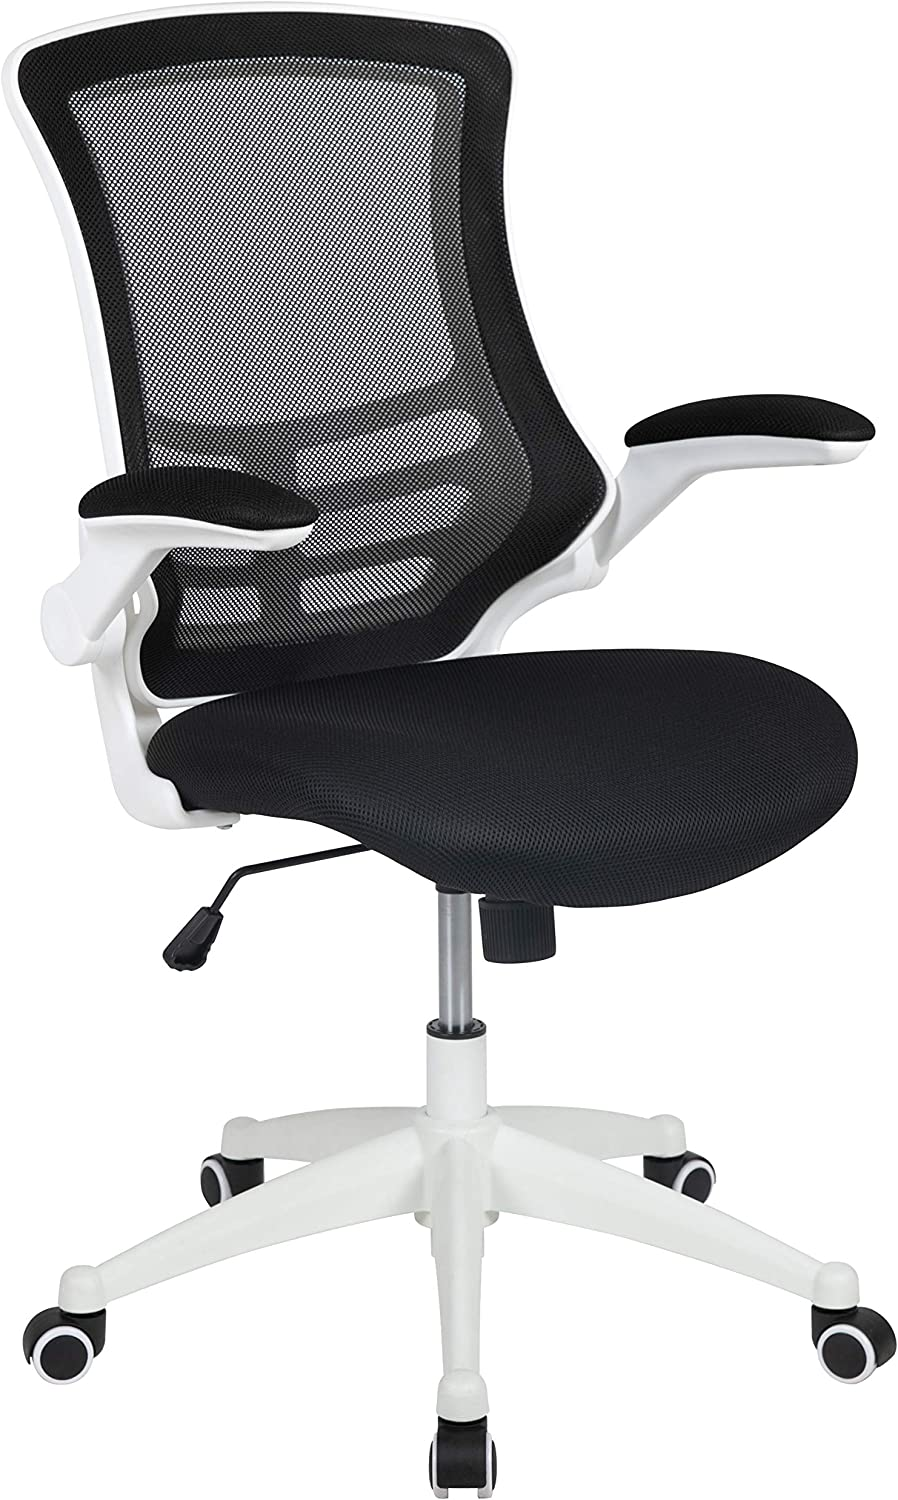 Flash Furniture Mid-Back Black Mesh Swivel Ergonomic Task Office Chair with White Frame and Flip-Up Arms, BIFMA Certified